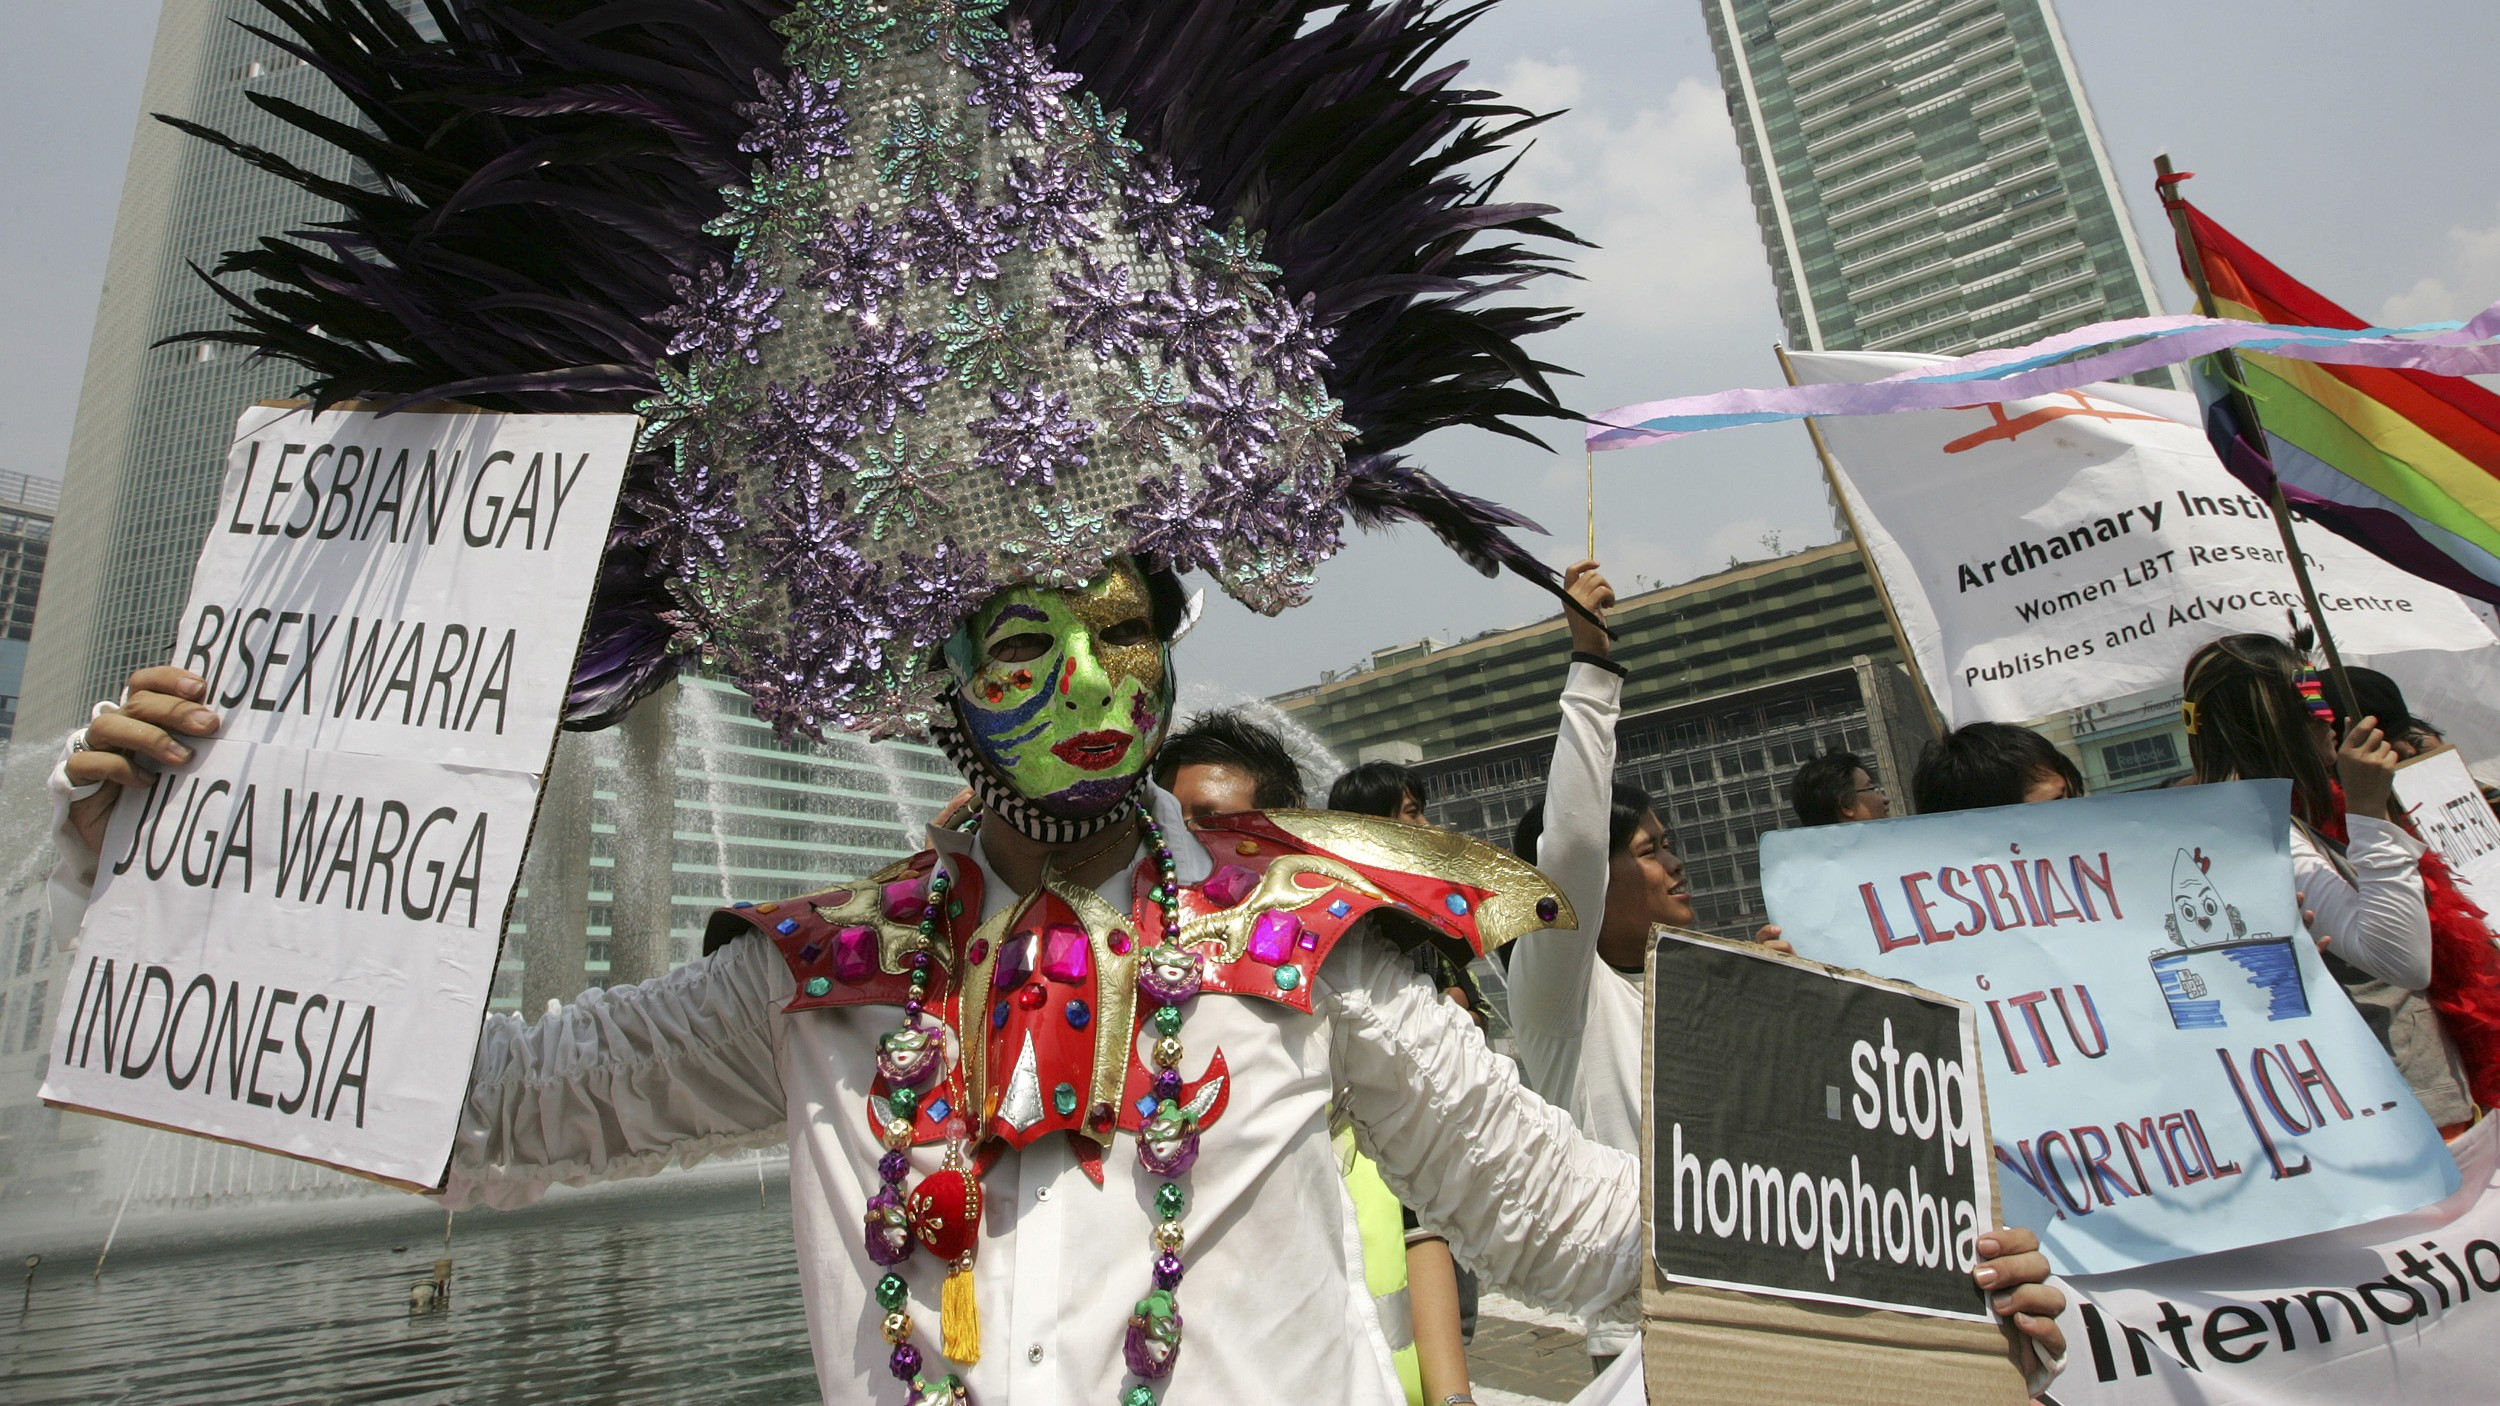 A transsexual holds a placard during an International Day Against Homophobia demonstration along Jakarta's main street